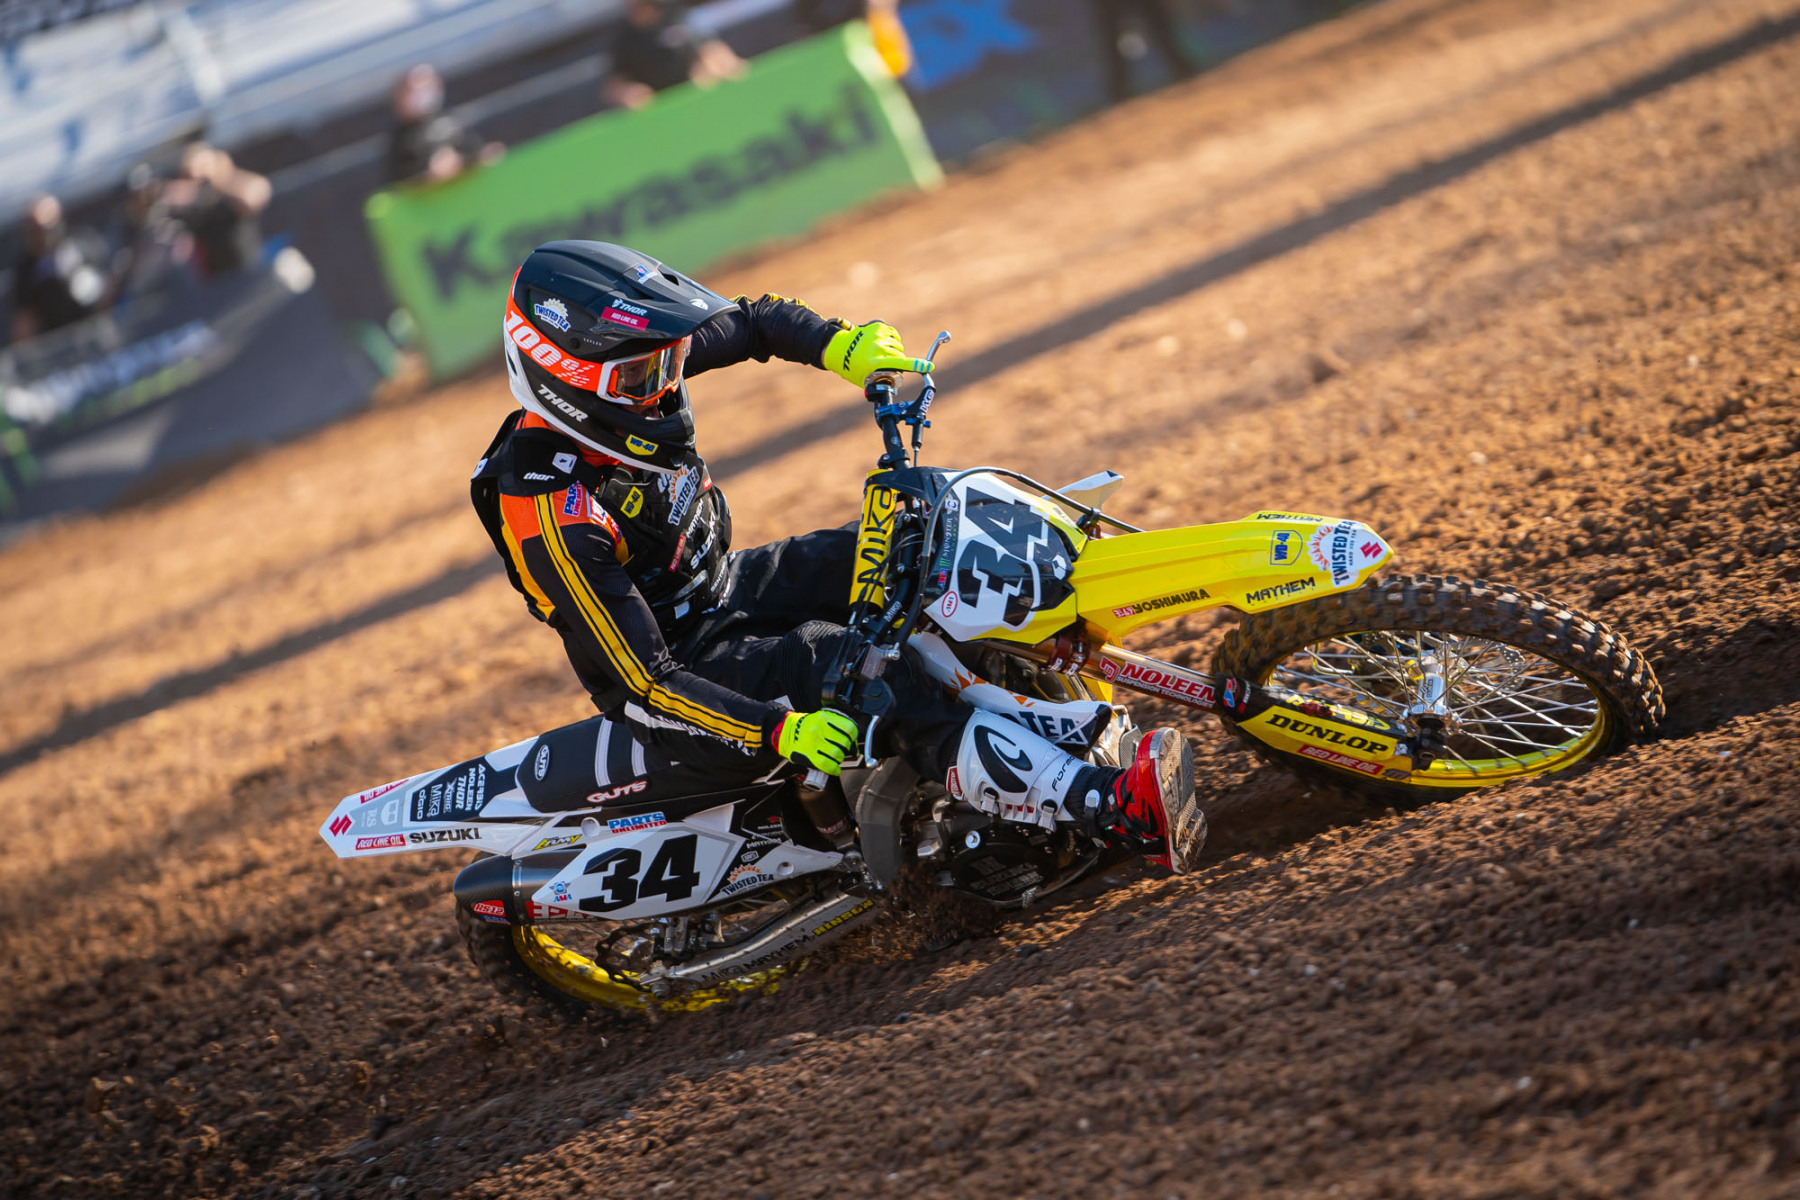 2021-ORLANDO-TWO-SUPERCROSS_KICKSTART_1518